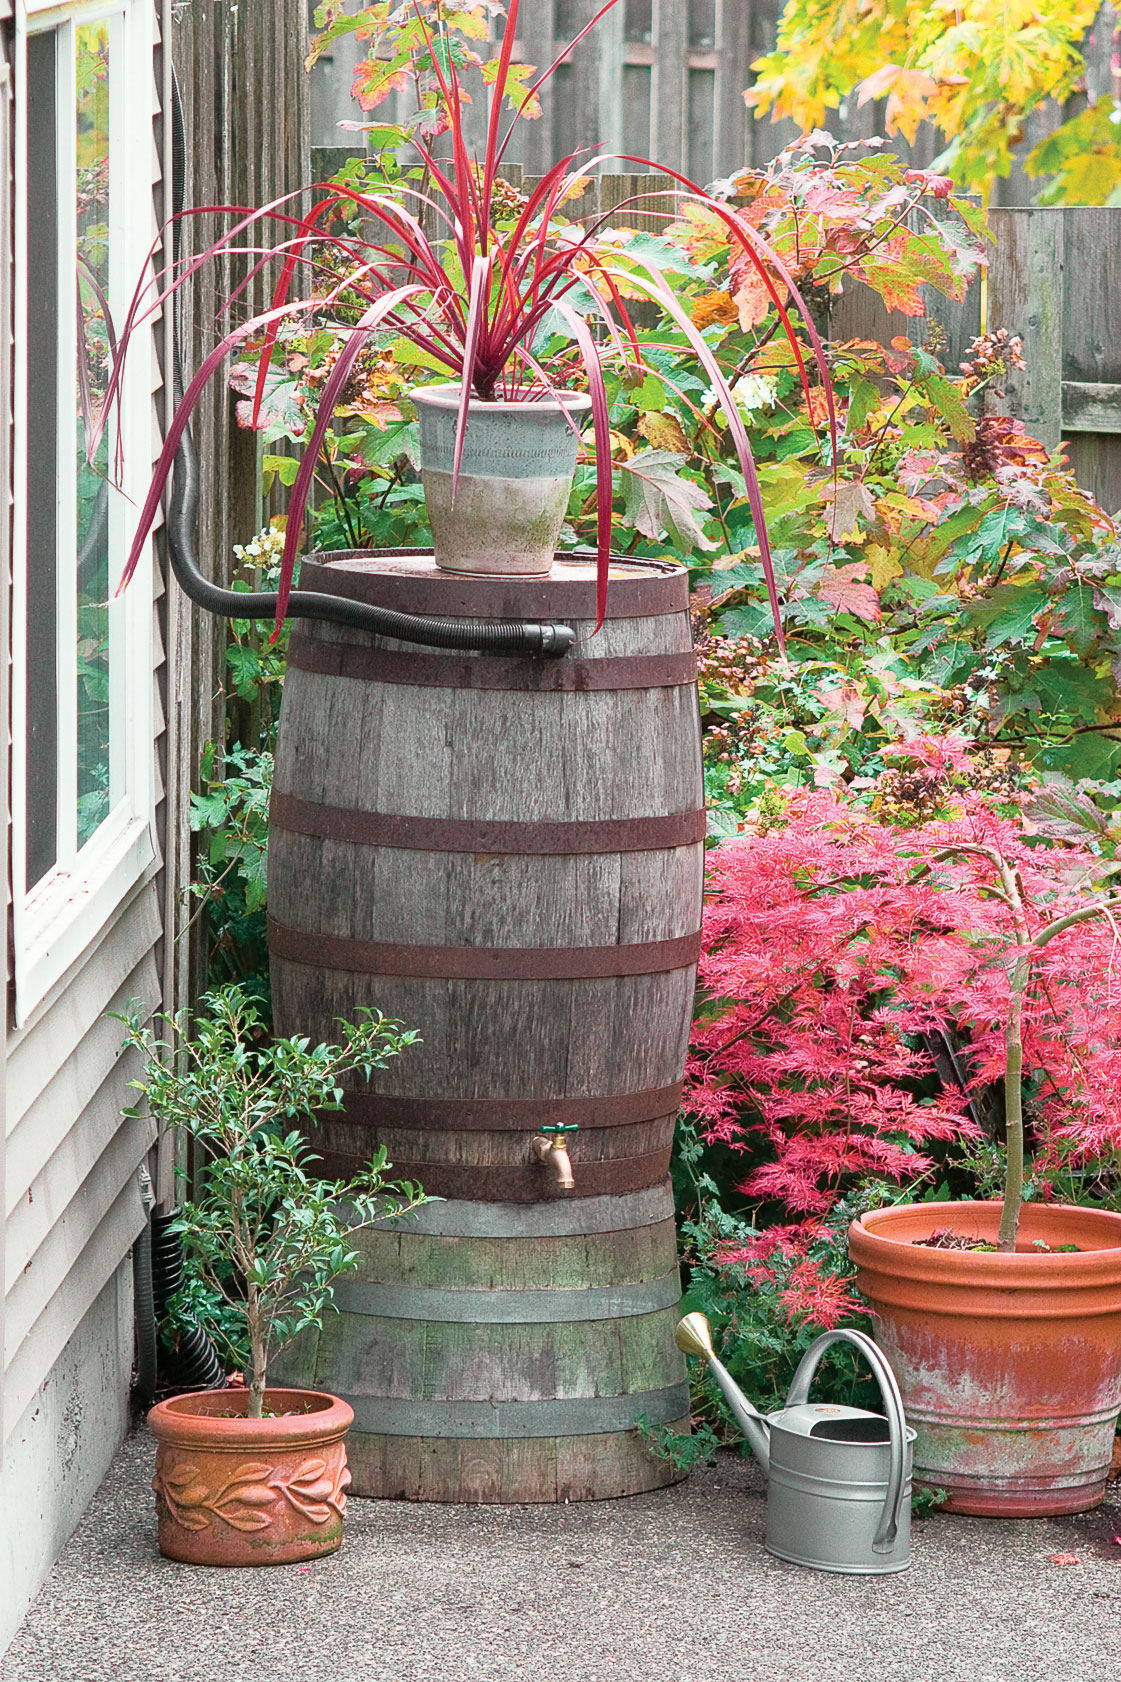 Copper rainwater chain